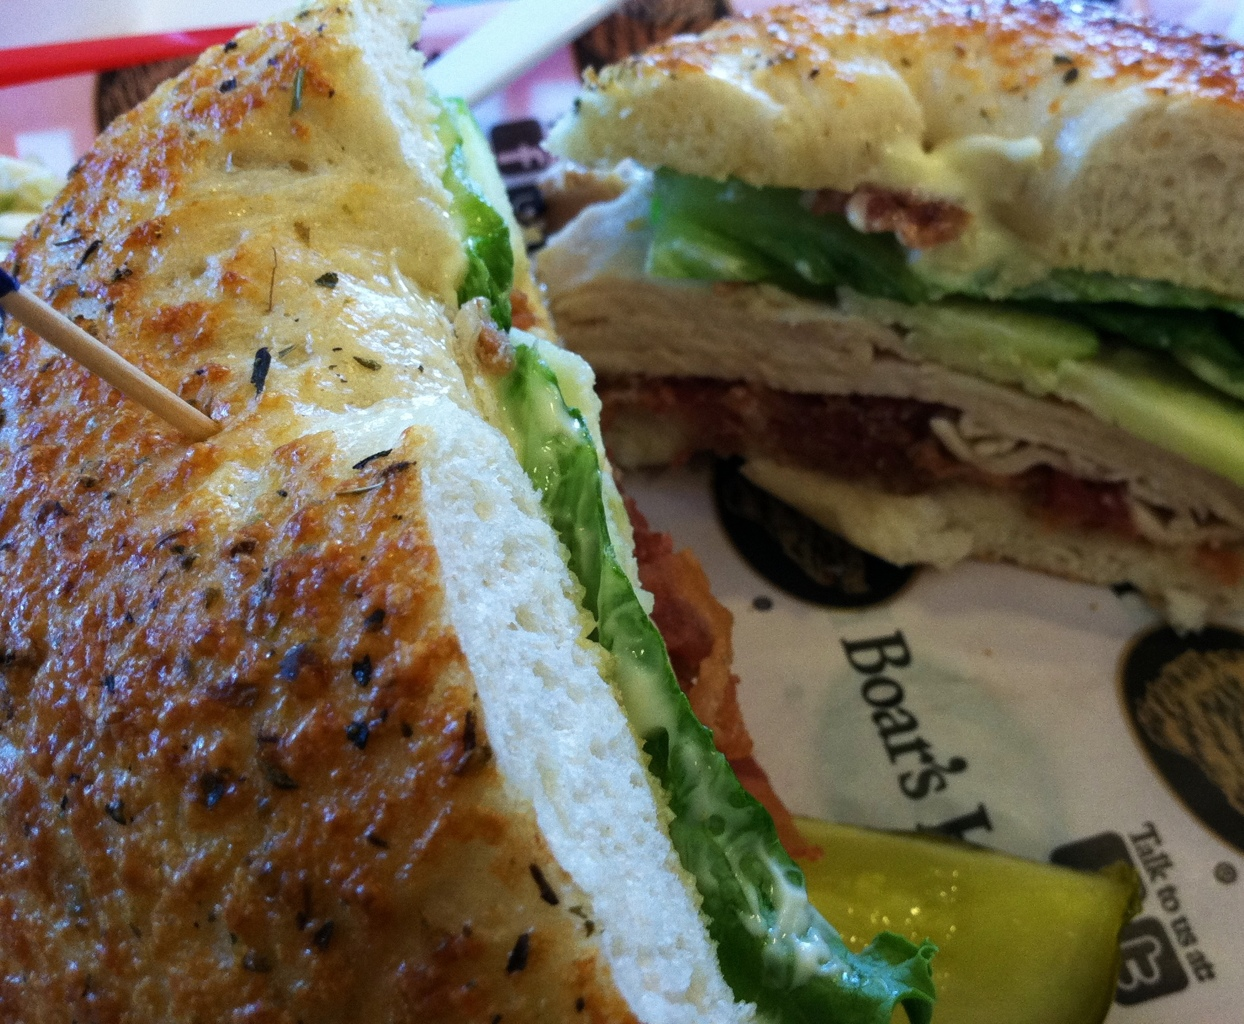 Bagelheads - Johnni Appleseed bagel sandwich